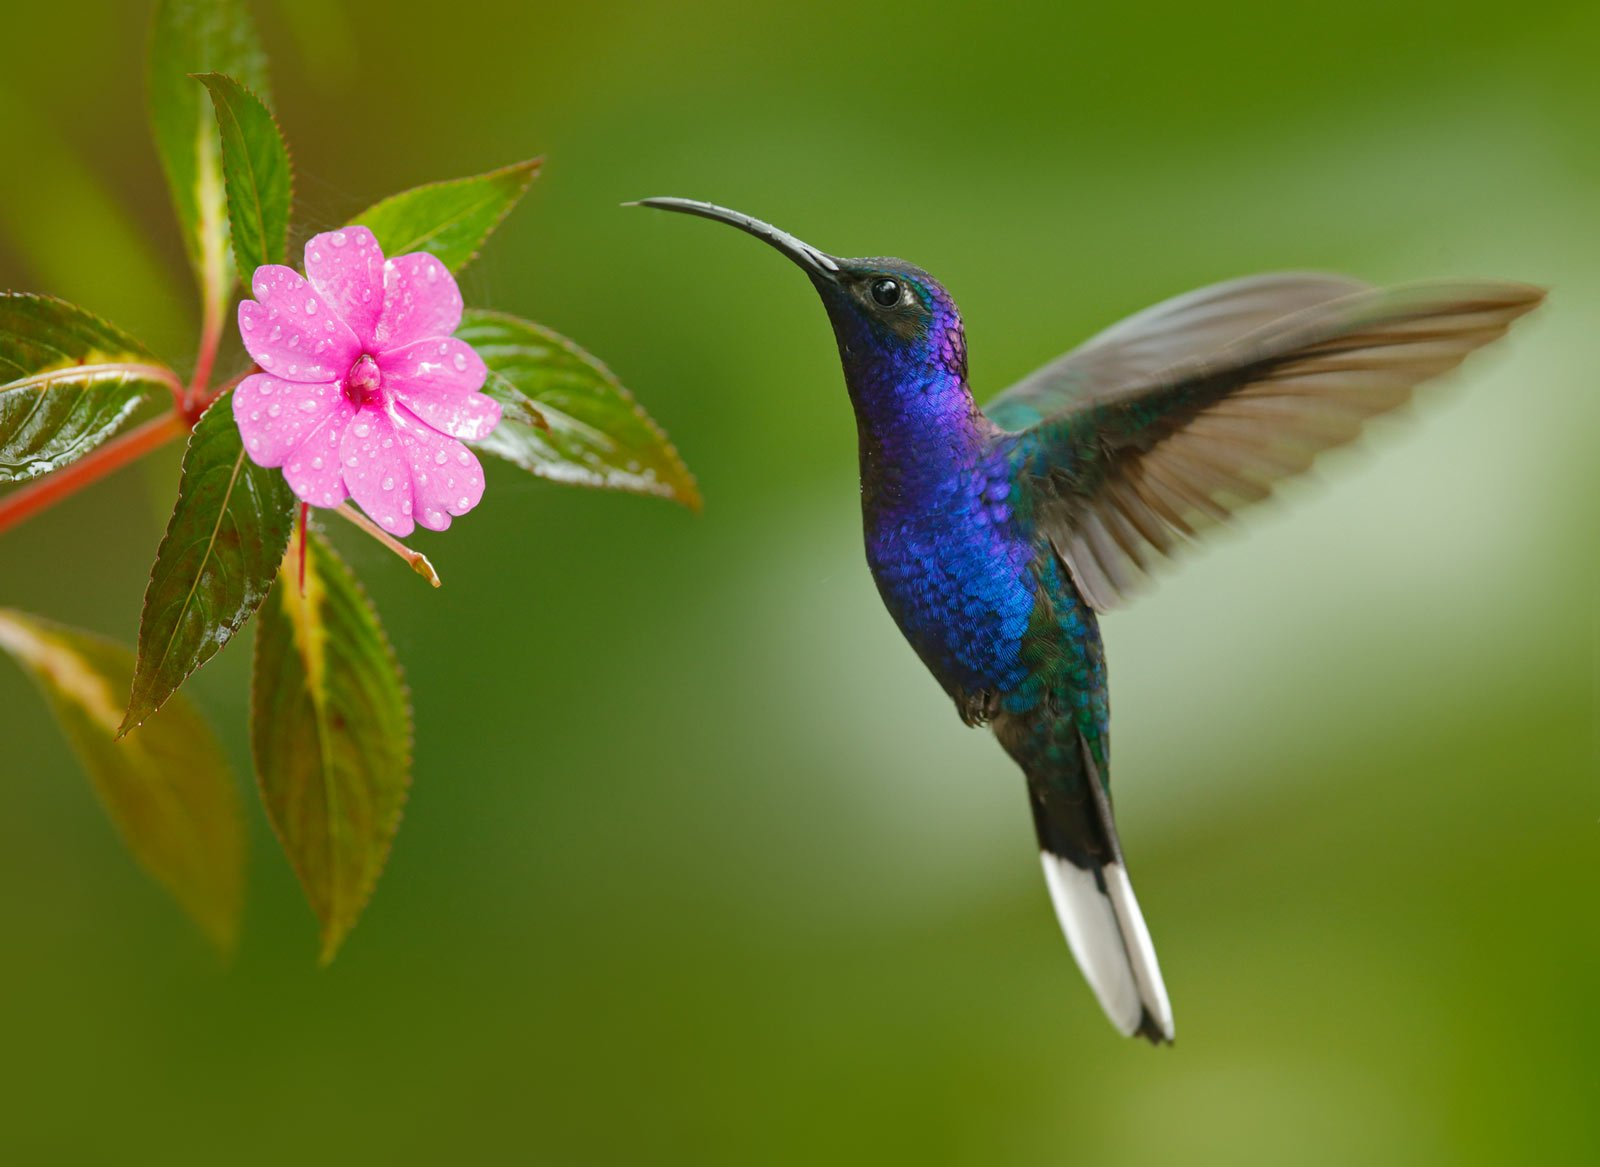 One of the largest hummingbirds in the world, the Violet Sabrewing loves heliconia and banana flowers.